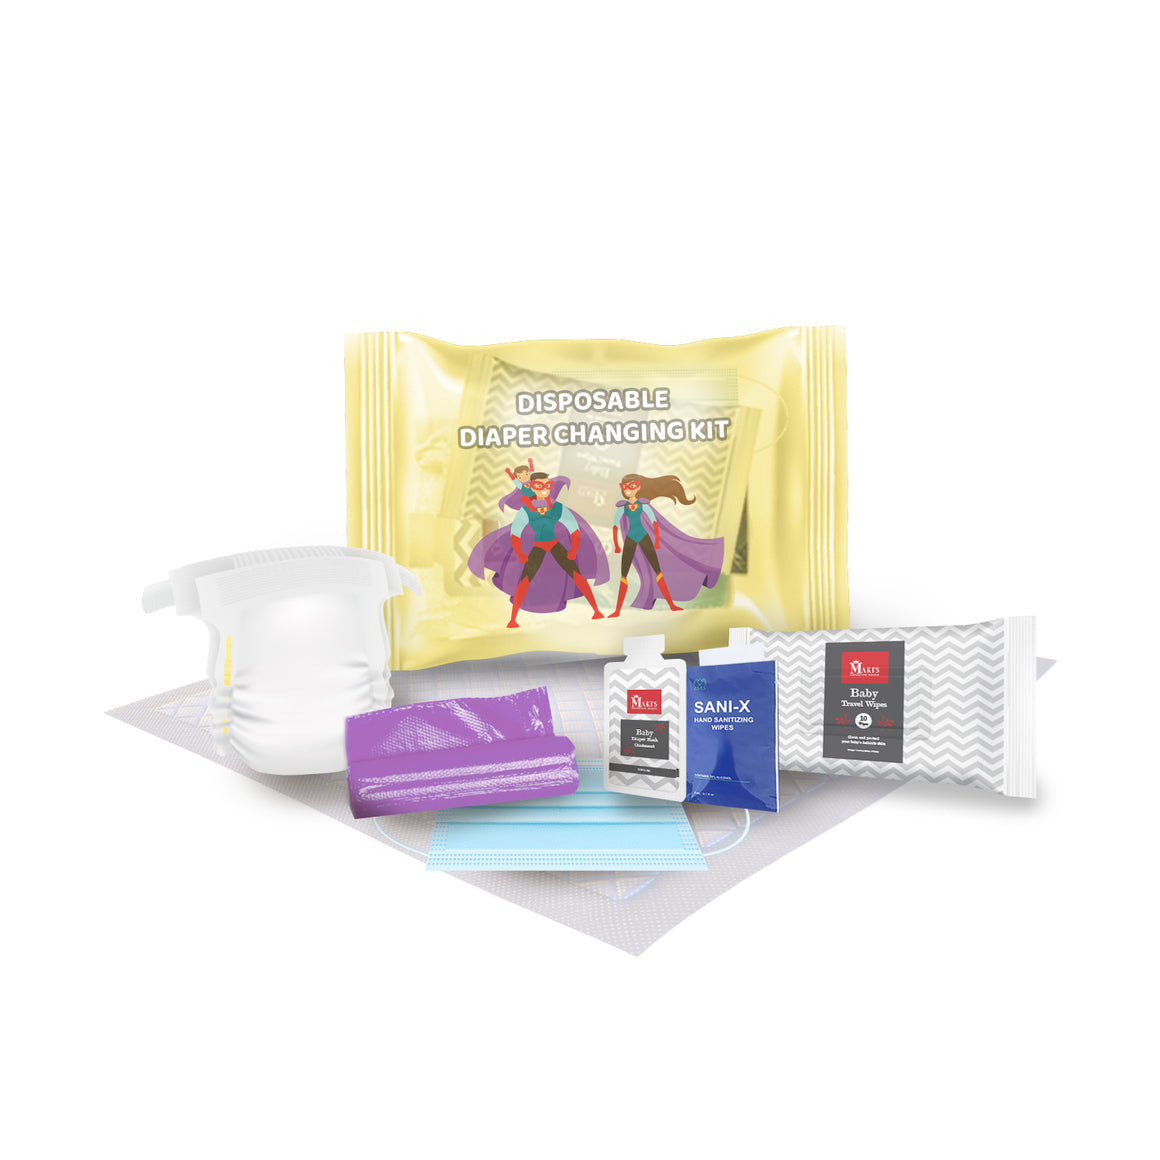 Disposable Size 4 Diaper Changing Kits for Baby On-The-Go